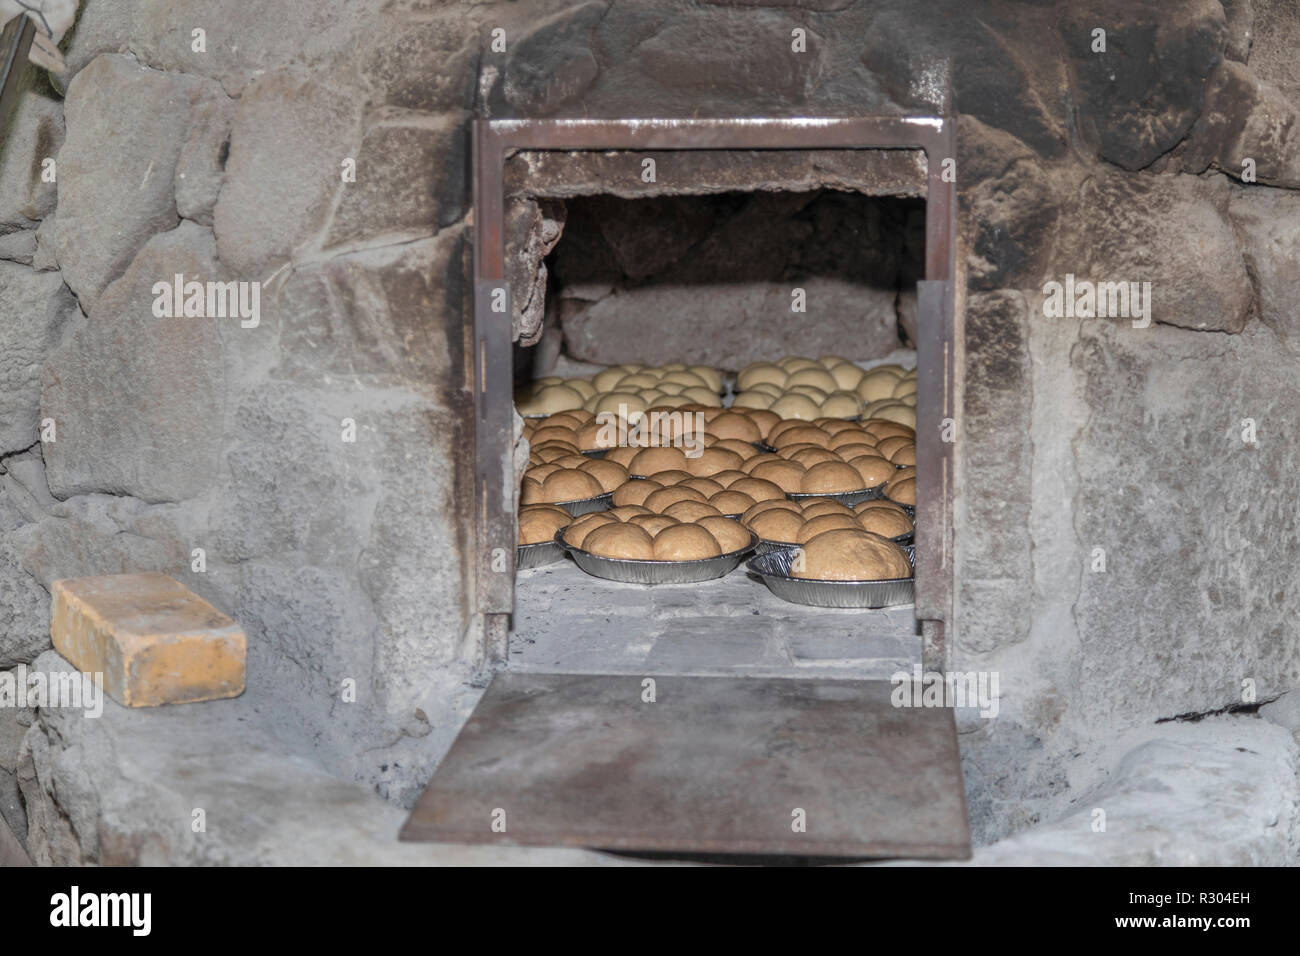 Kealakekua, Hawaii - Members of the Kona Historical Society, helped by tourists, bake bread in a Portuguese stone oven. The oven is a reproduction of  - Stock Image